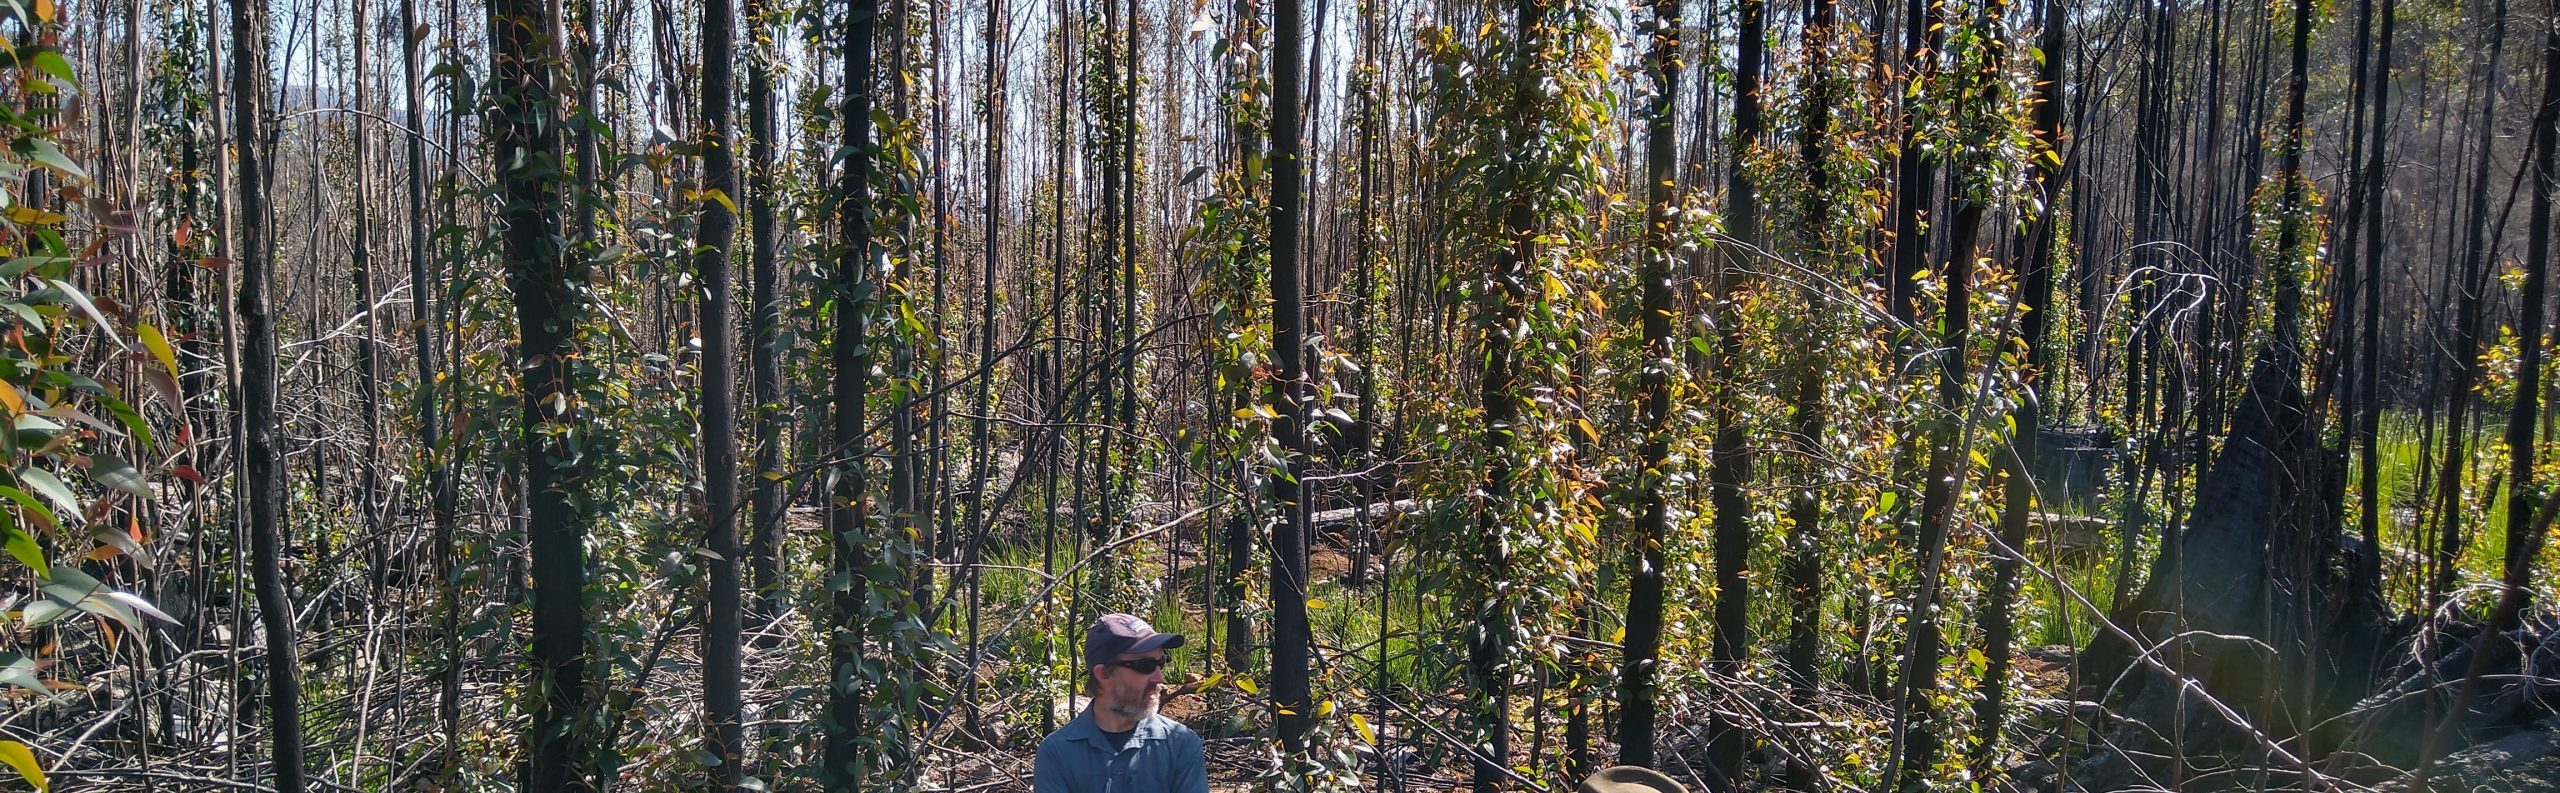 Fire Centre Ecologist discusses fire risk and clearfelling